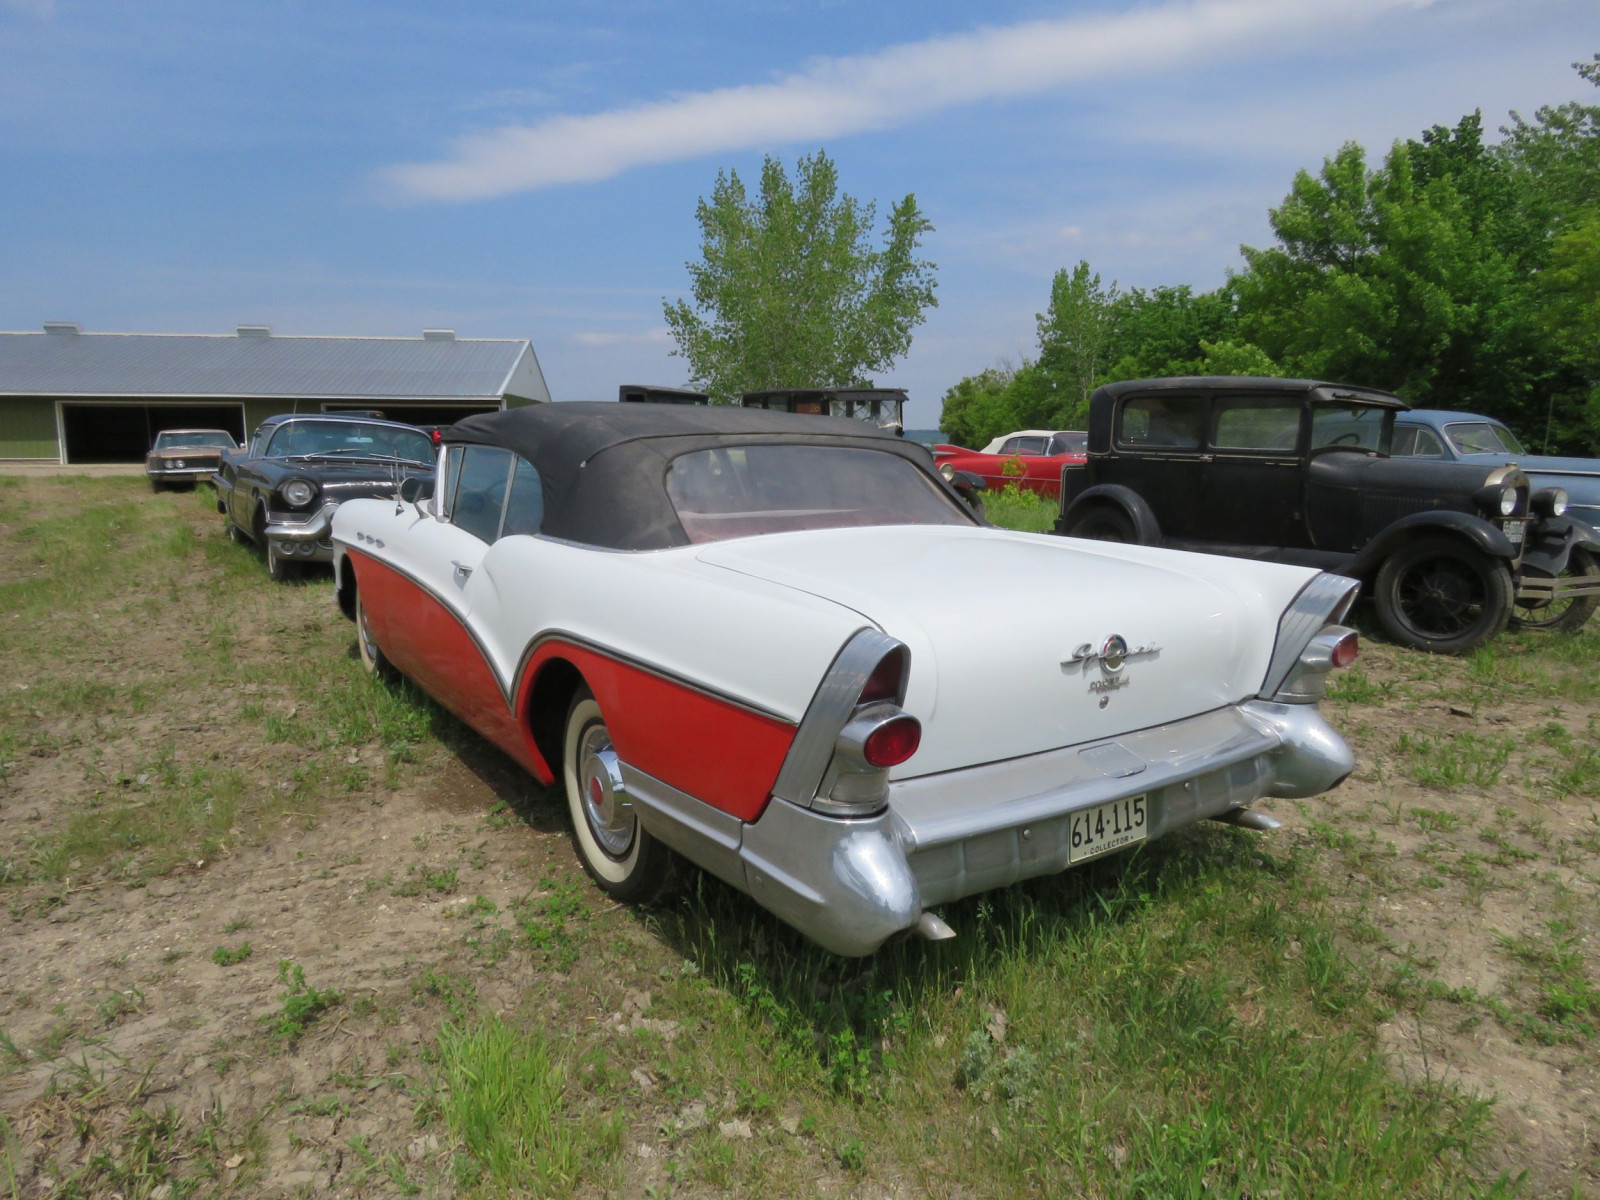 1957 Buick Special Convertible D1110085 - Image 4